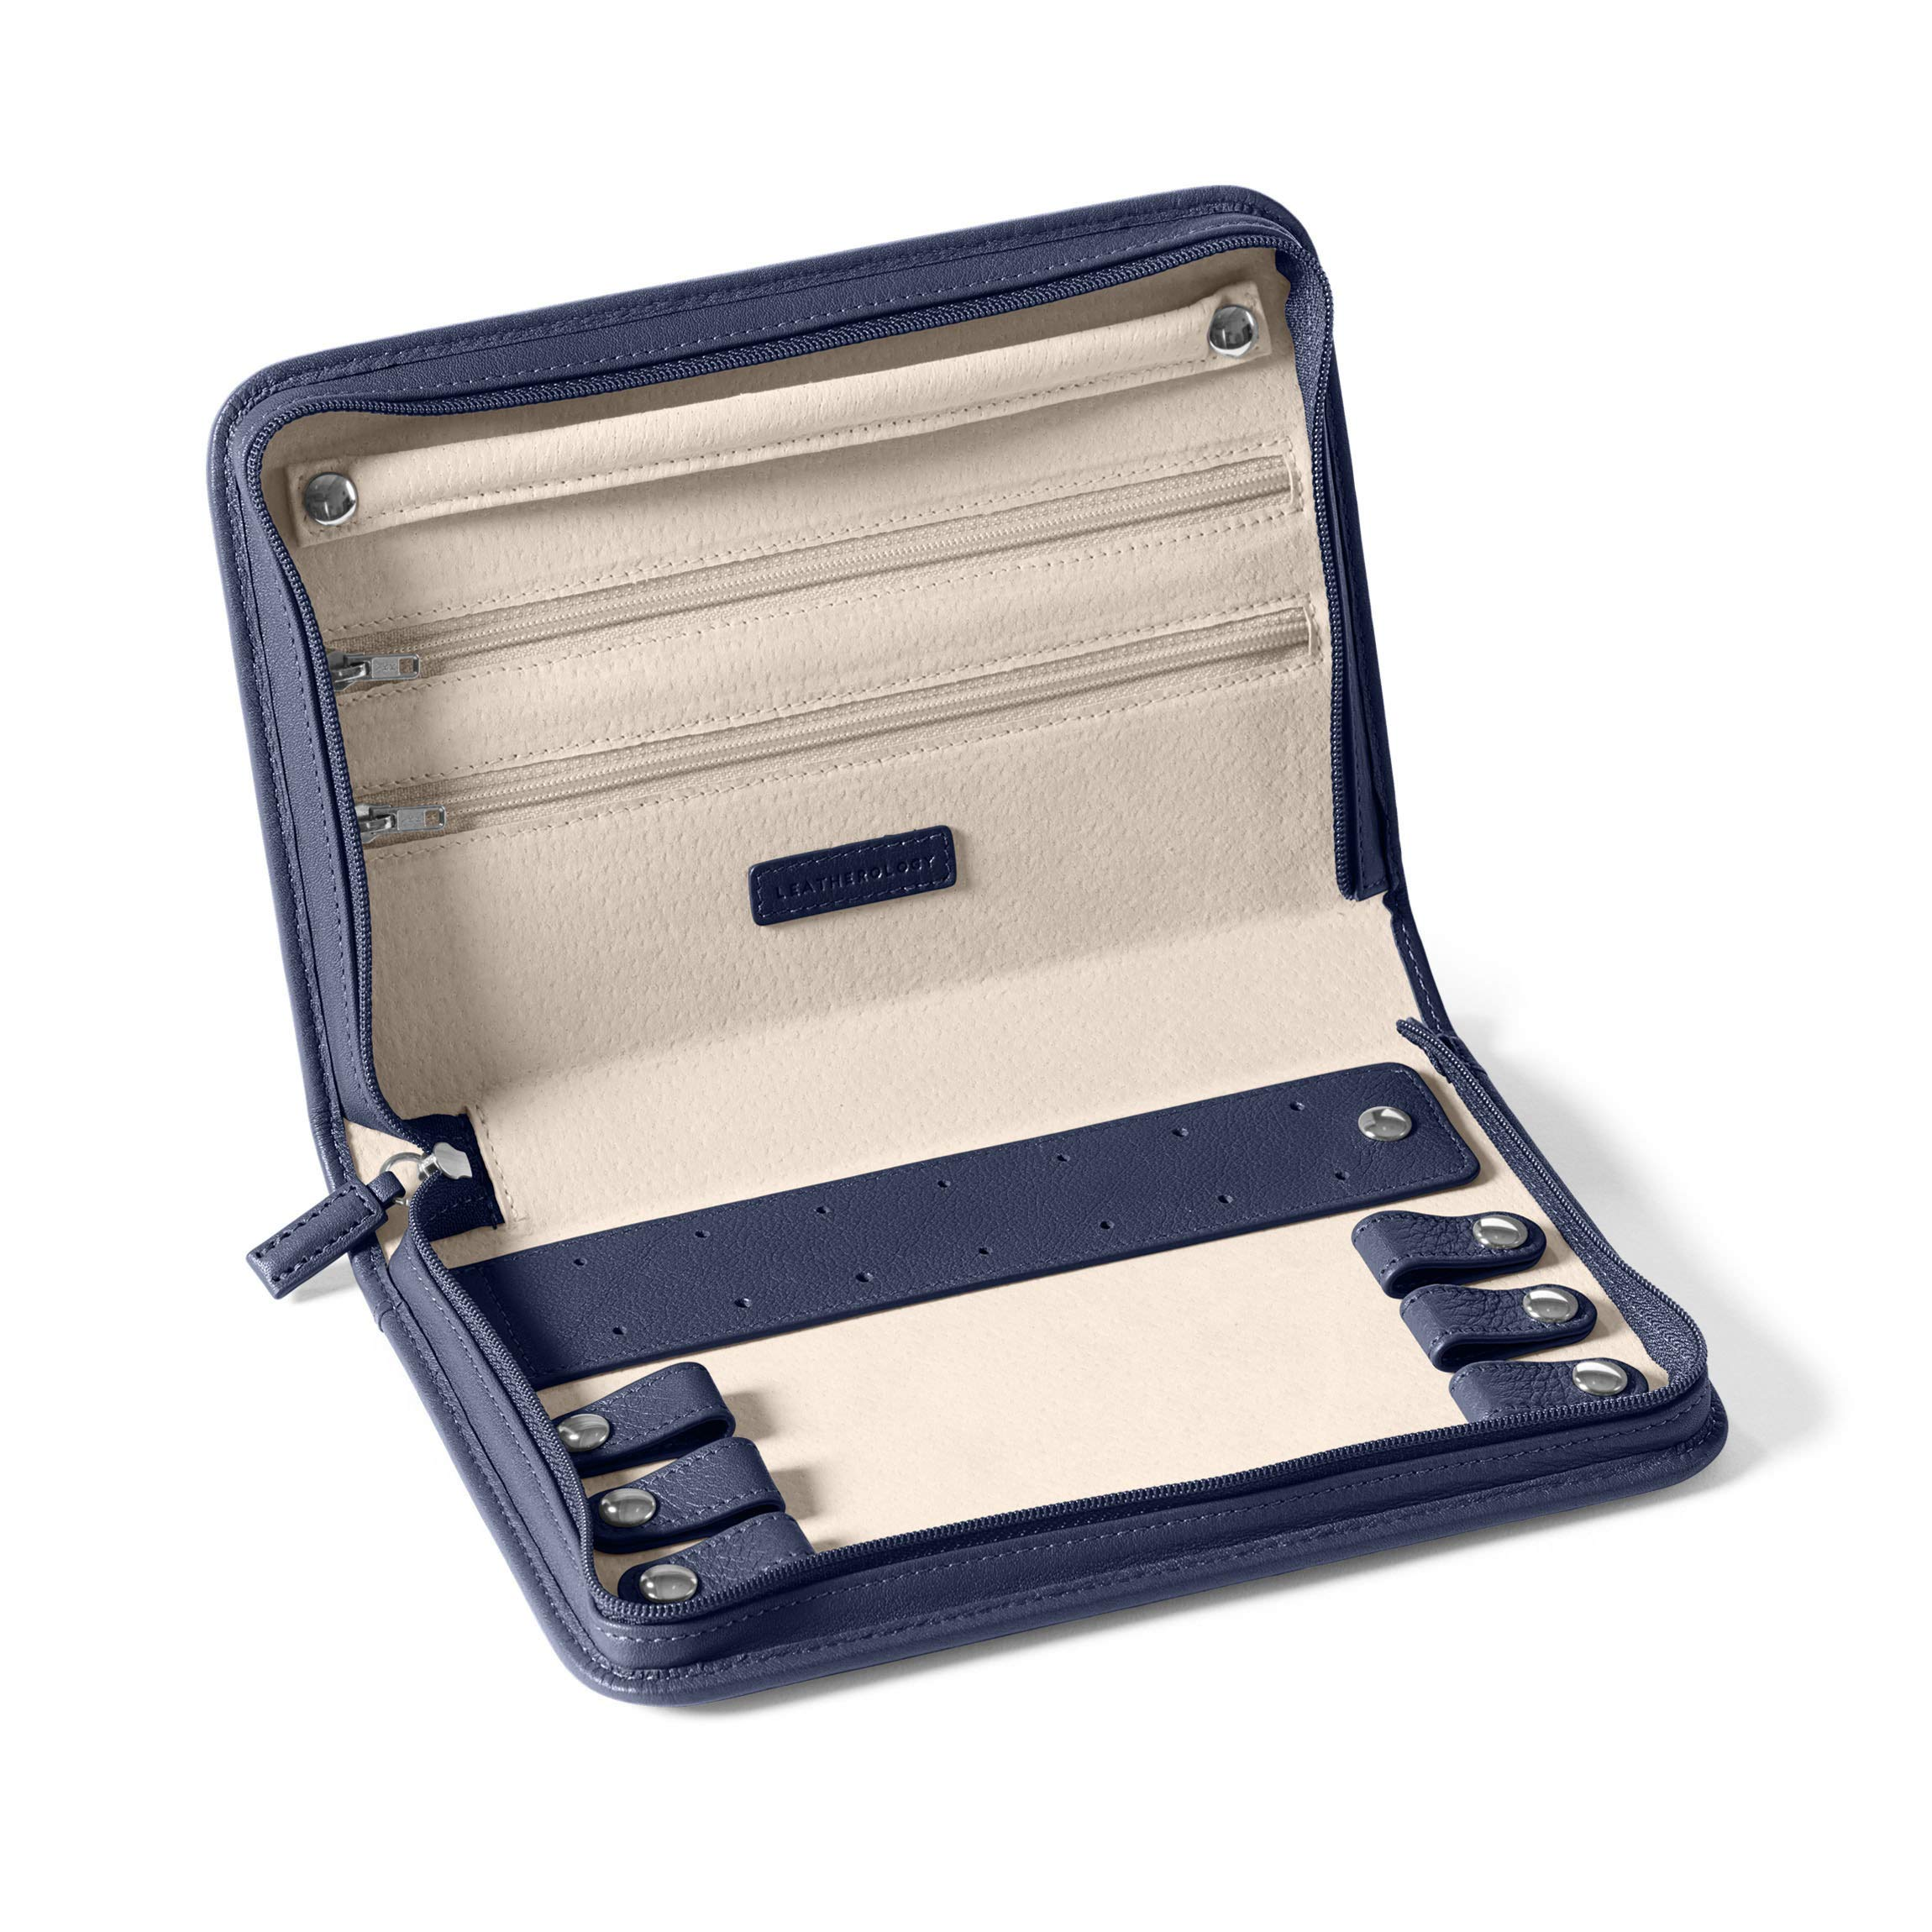 Large Jewelry Case - Full Grain Leather - Navy (blue)